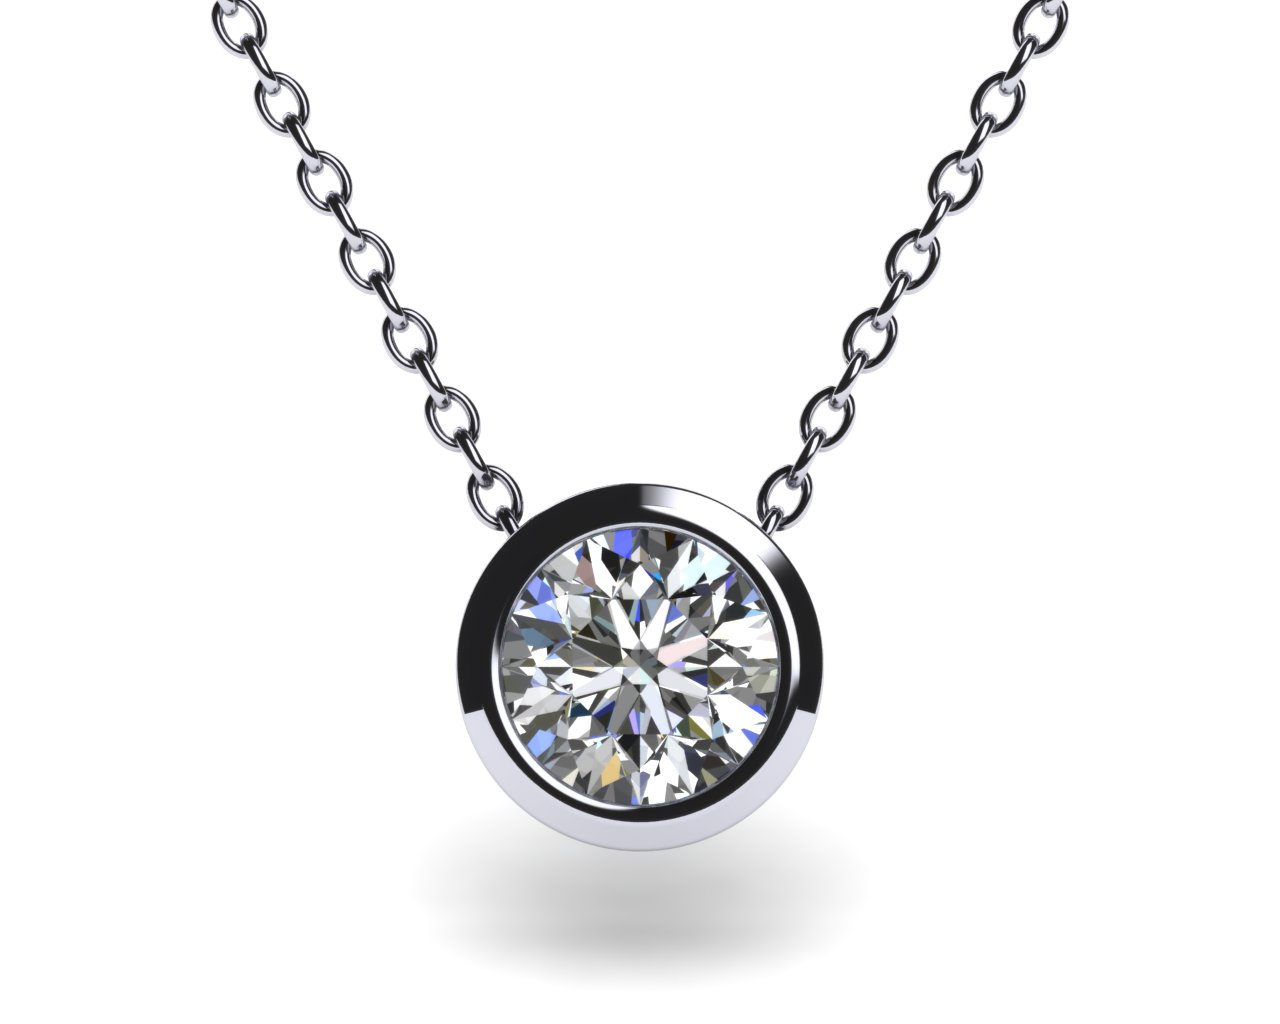 pendant ltd collections sapphire necklace pear sideway ogi pendants shape set products bezel